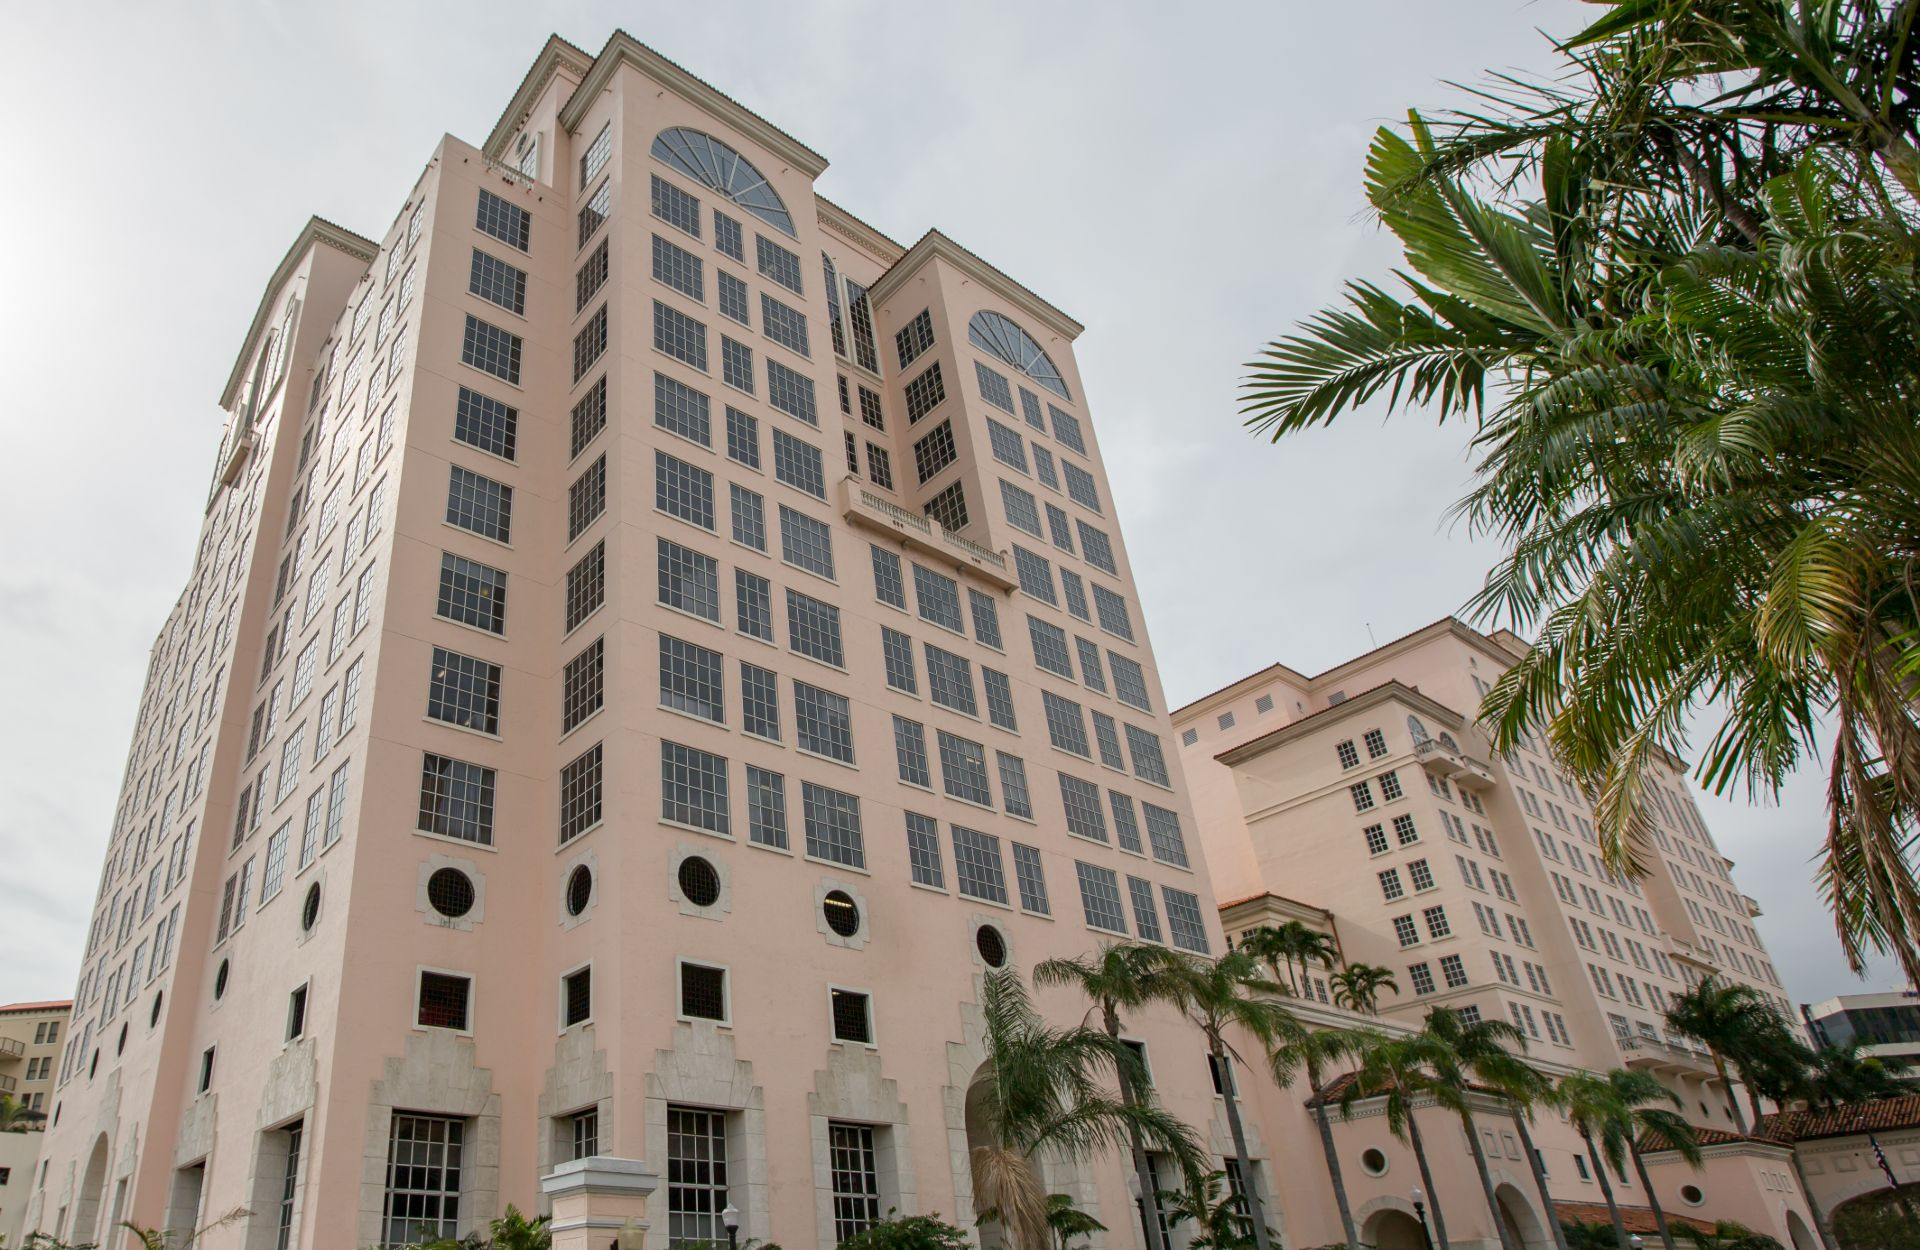 moskowitz-law-2-alhambra-coral-gables-7.jpg